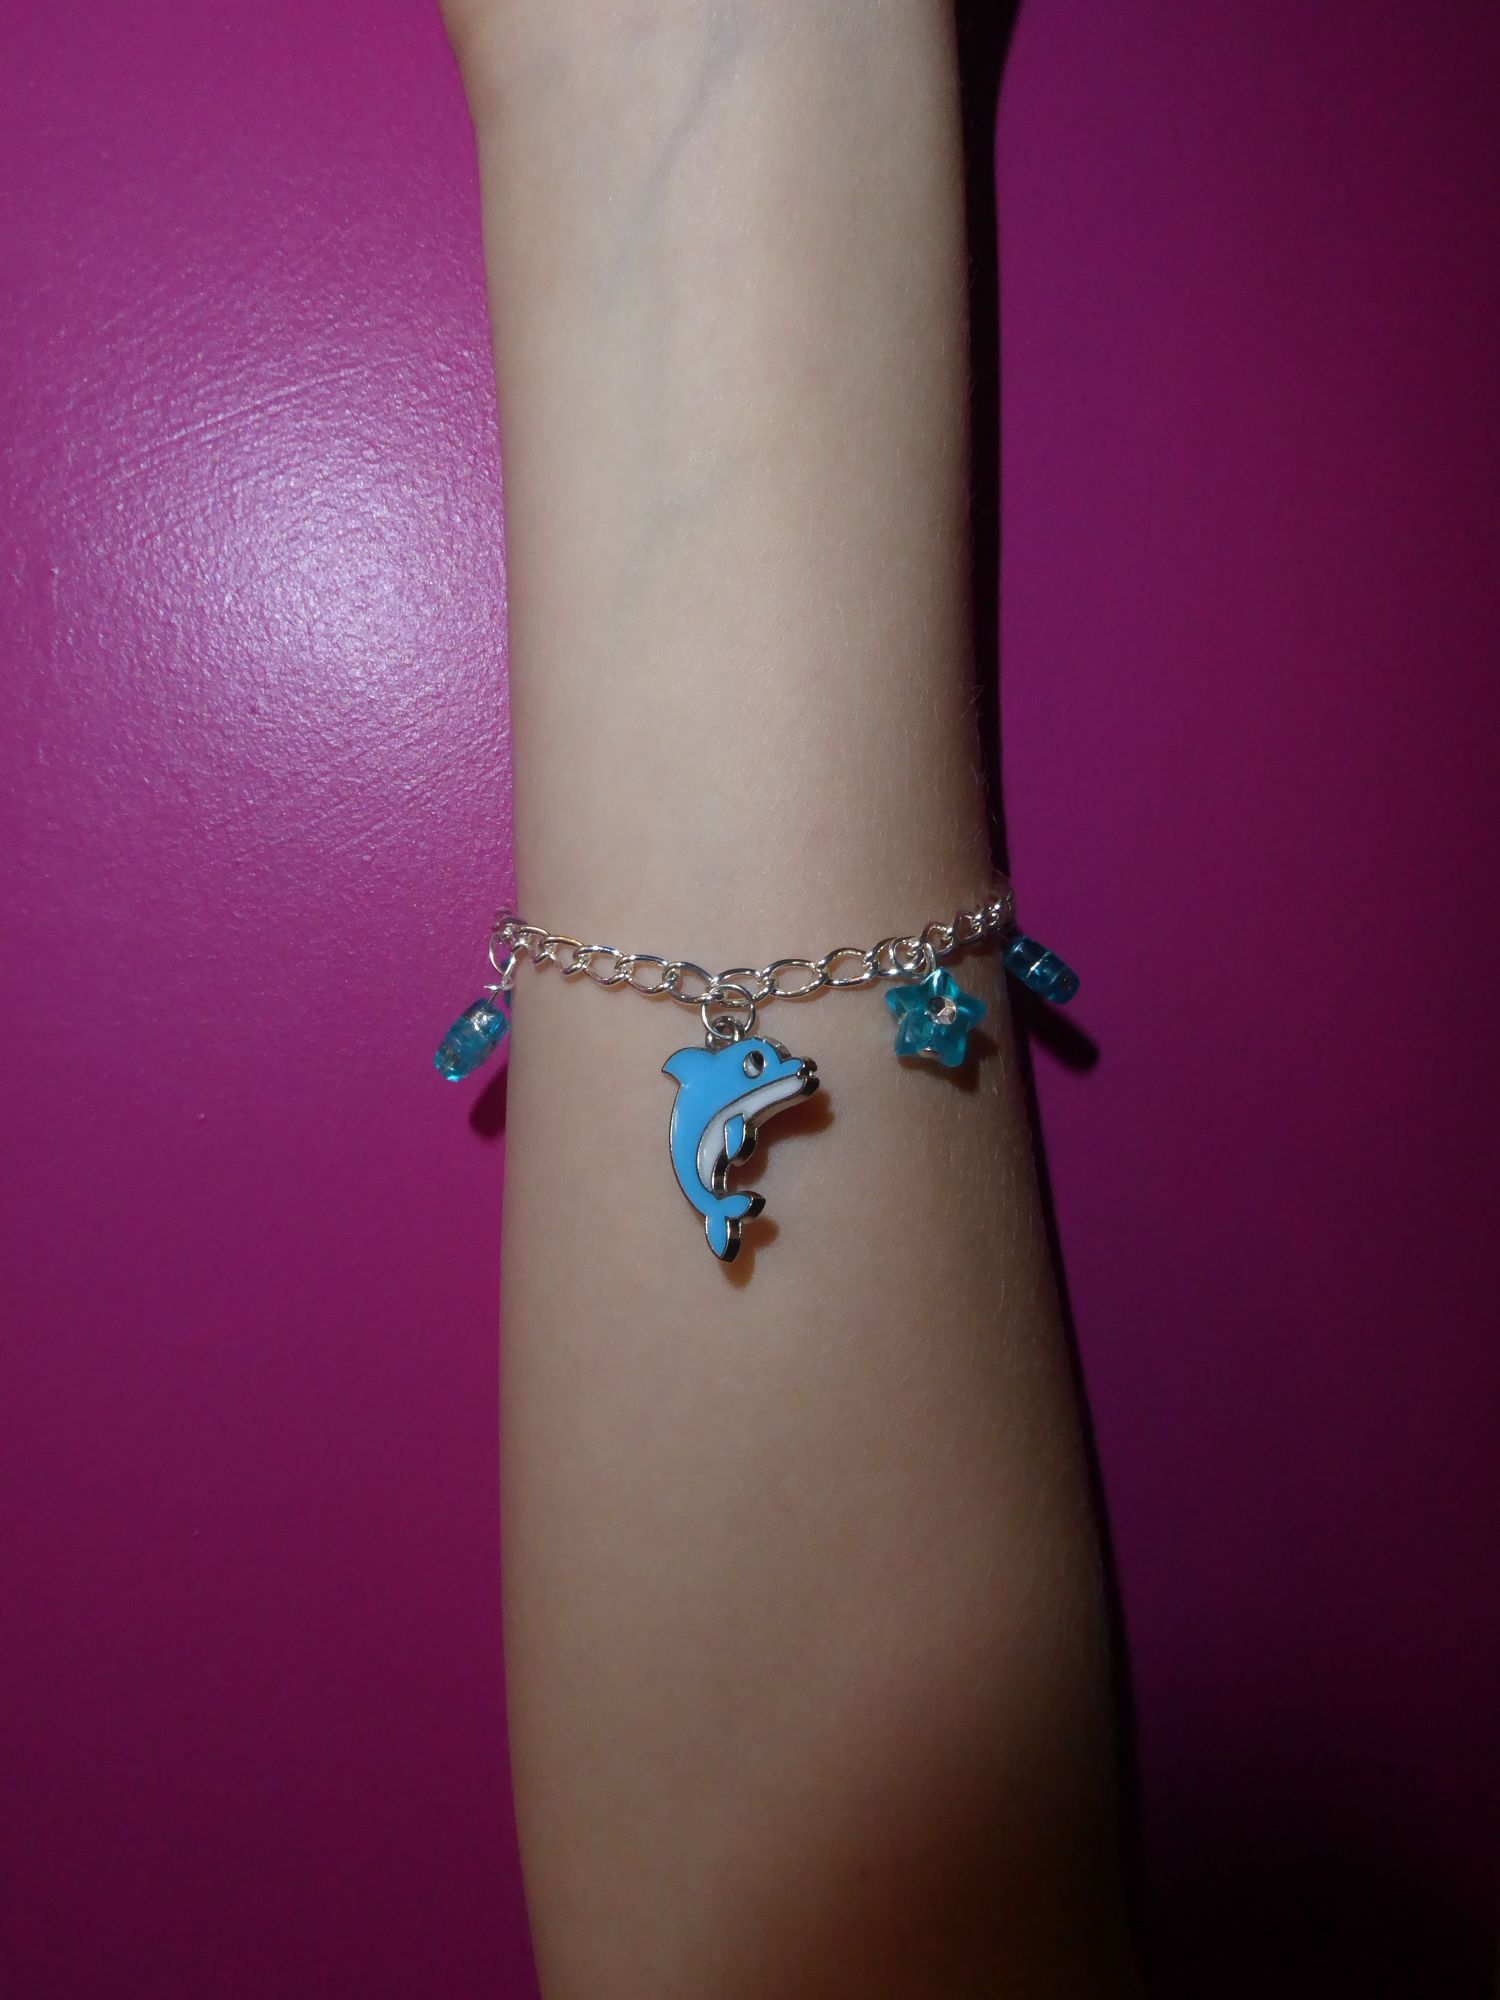 Simply charming - charm bracelet party